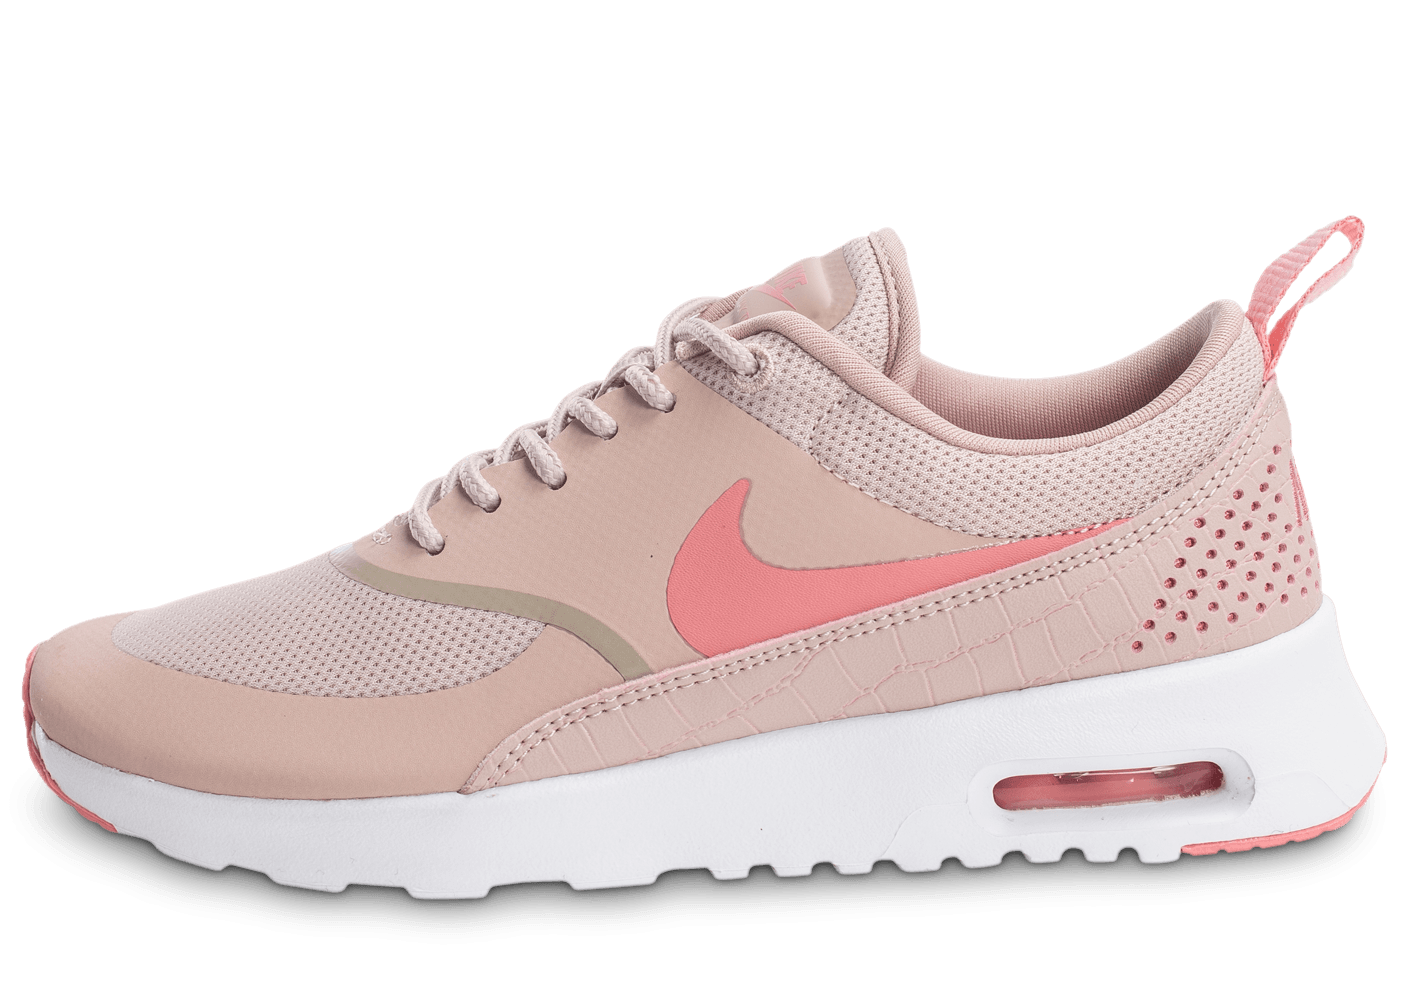 nike air max thea w rose et blanche chaussures 50 sur le 2e article chausport. Black Bedroom Furniture Sets. Home Design Ideas